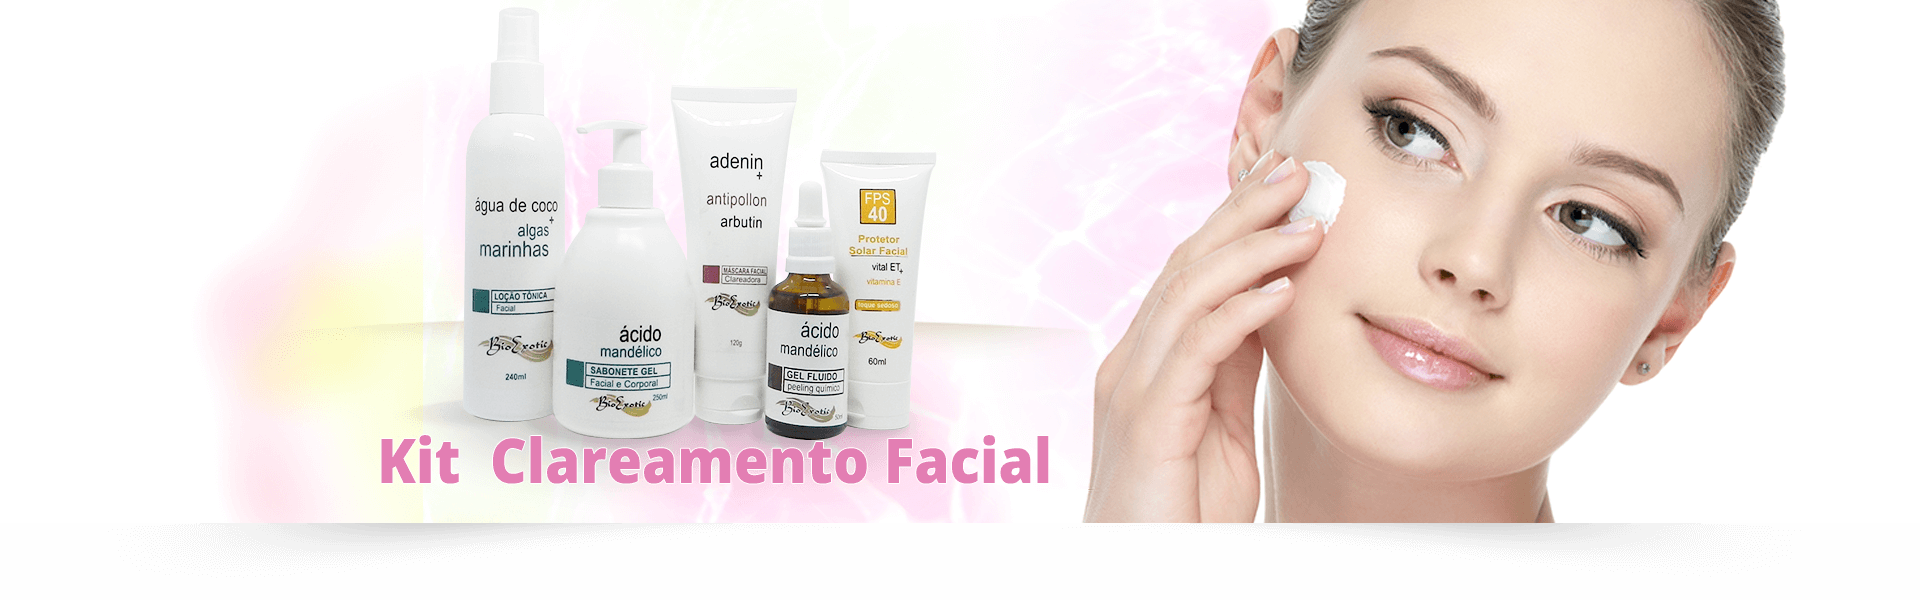 Kit para Clareamento Facial